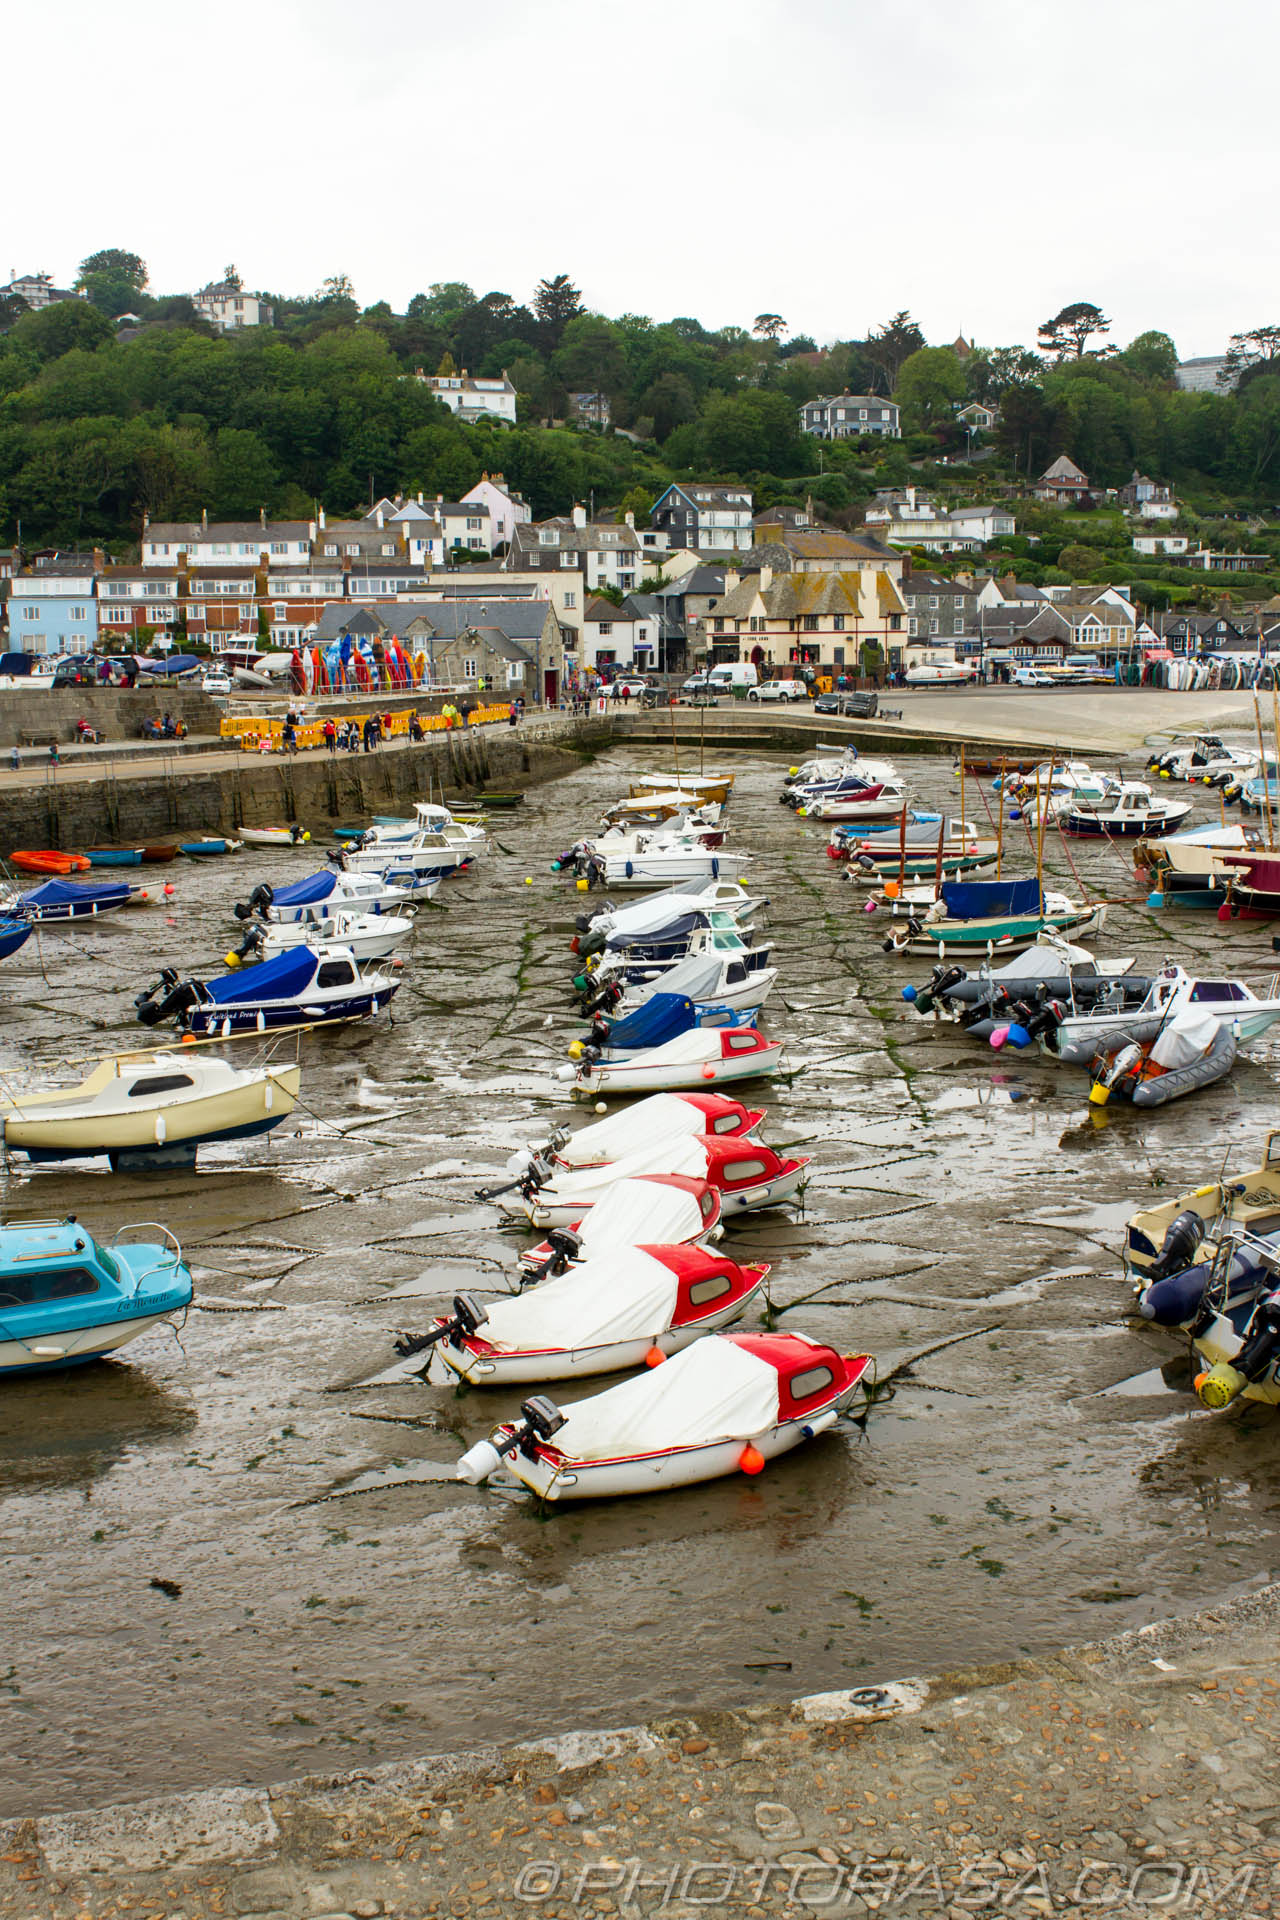 http://photorasa.com/lyme-regis/boats-lined-up-in-lyme-regis-harbour/